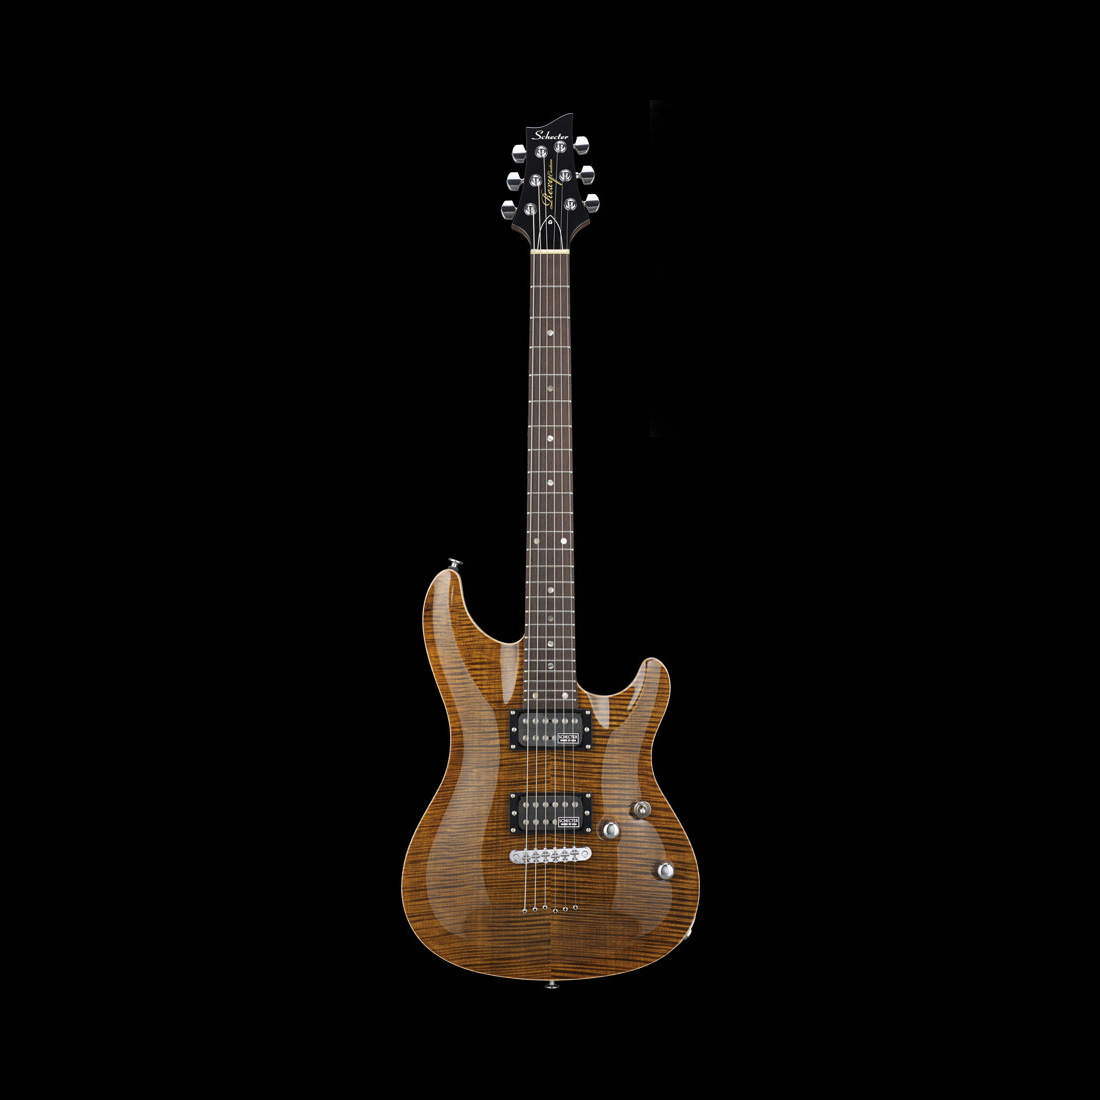 Schecter / RX-2-24-CTM-TOM Brown Amber シェクター エレキギター 《完全受注生産:予約受付中》